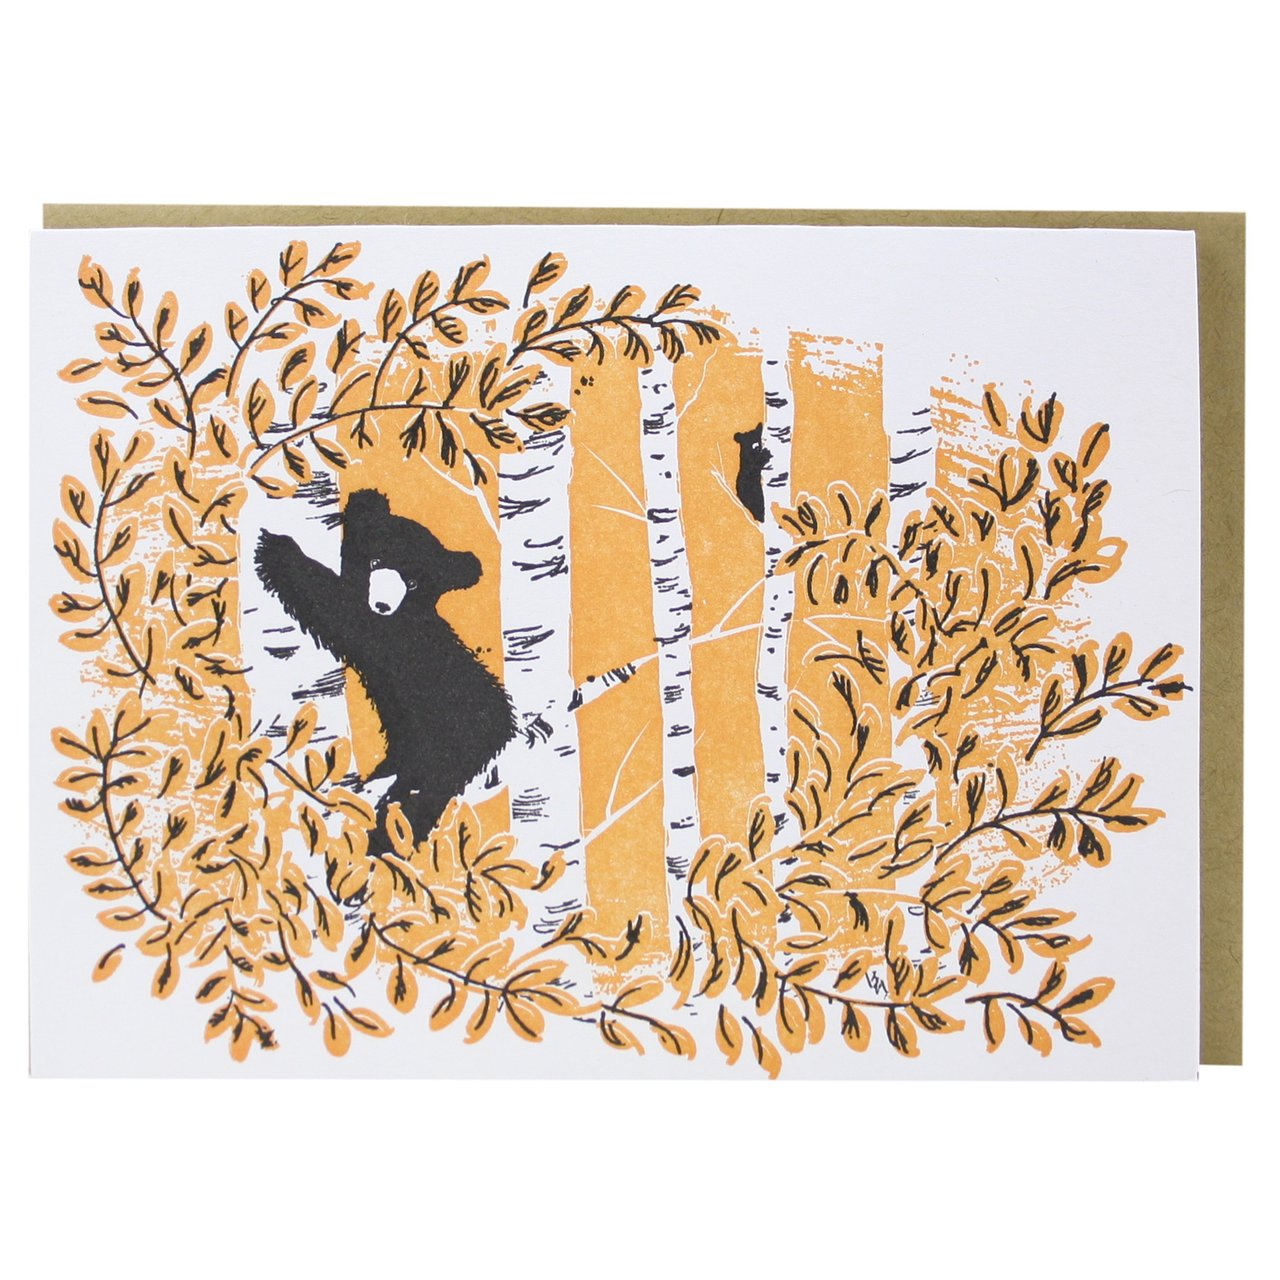 bear-in-the-forest-note-card_1280x1280.jpg